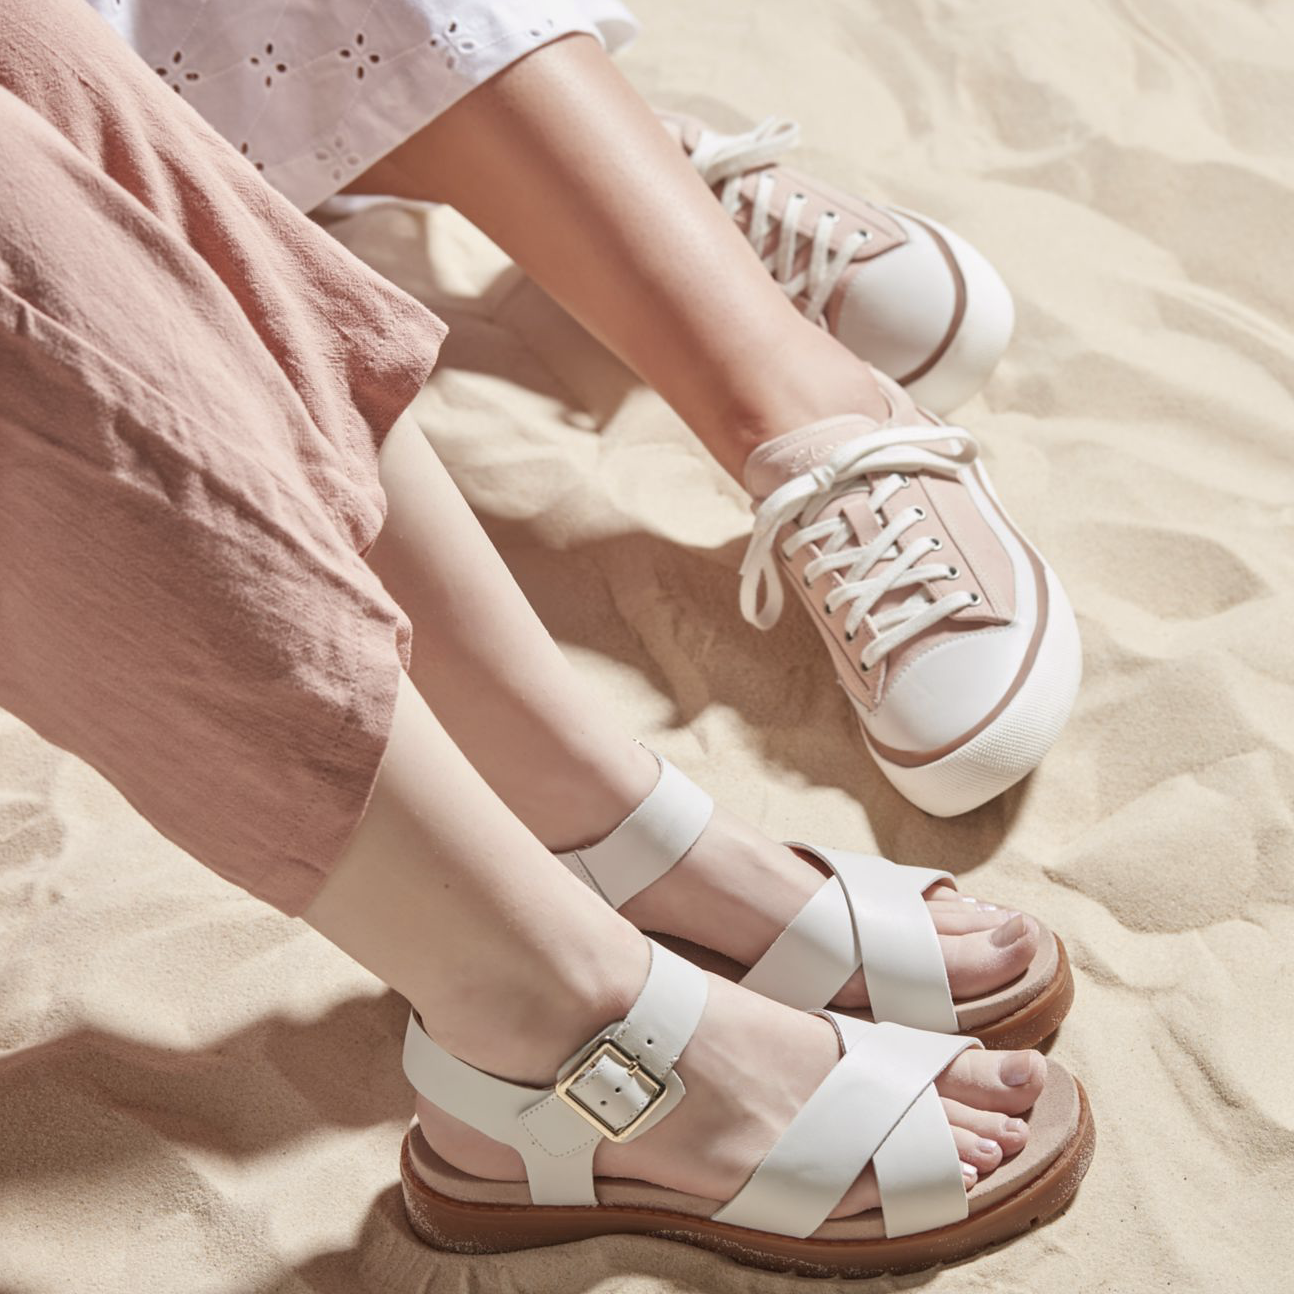 Clarks: Extra 40% off select styles.